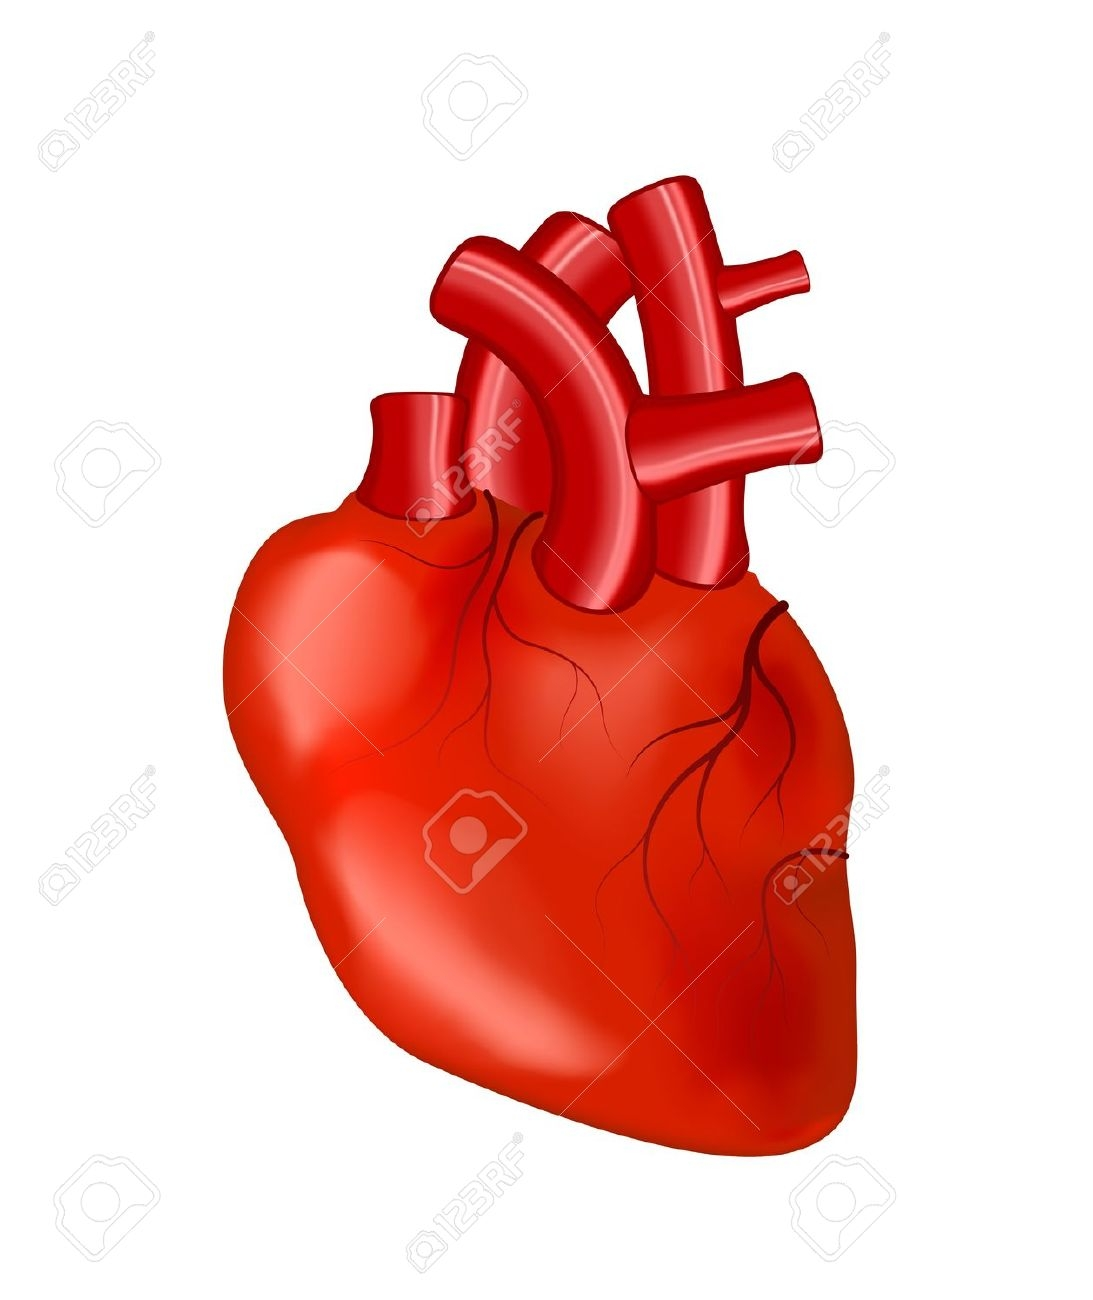 Real Human Heart Clipart.